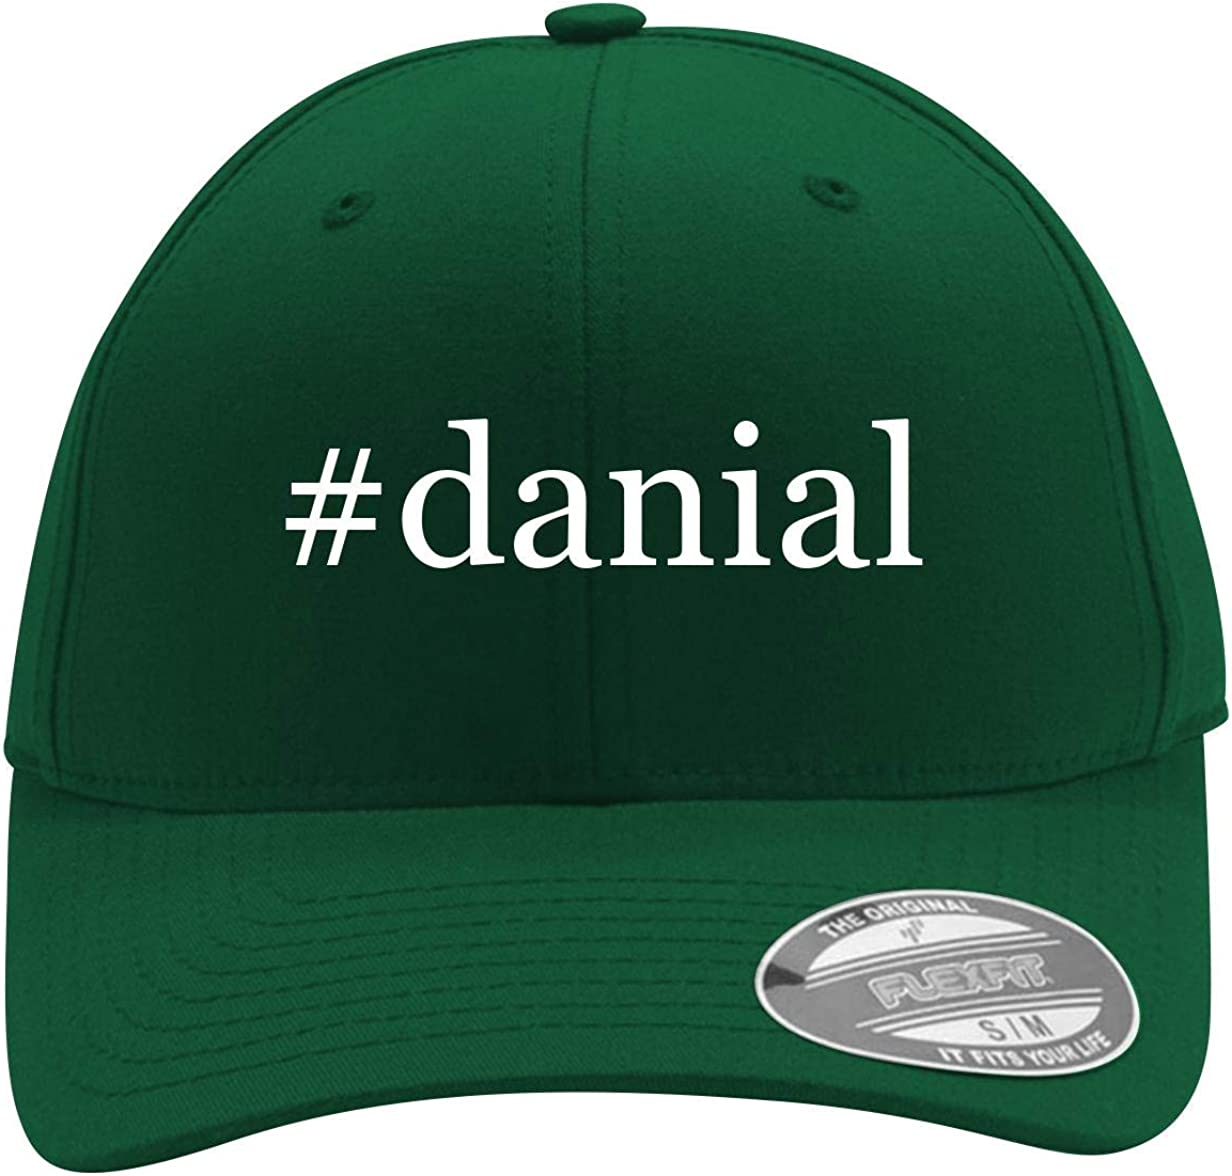 #Danial - Men's Hashtag Flexfit Baseball Cap Hat